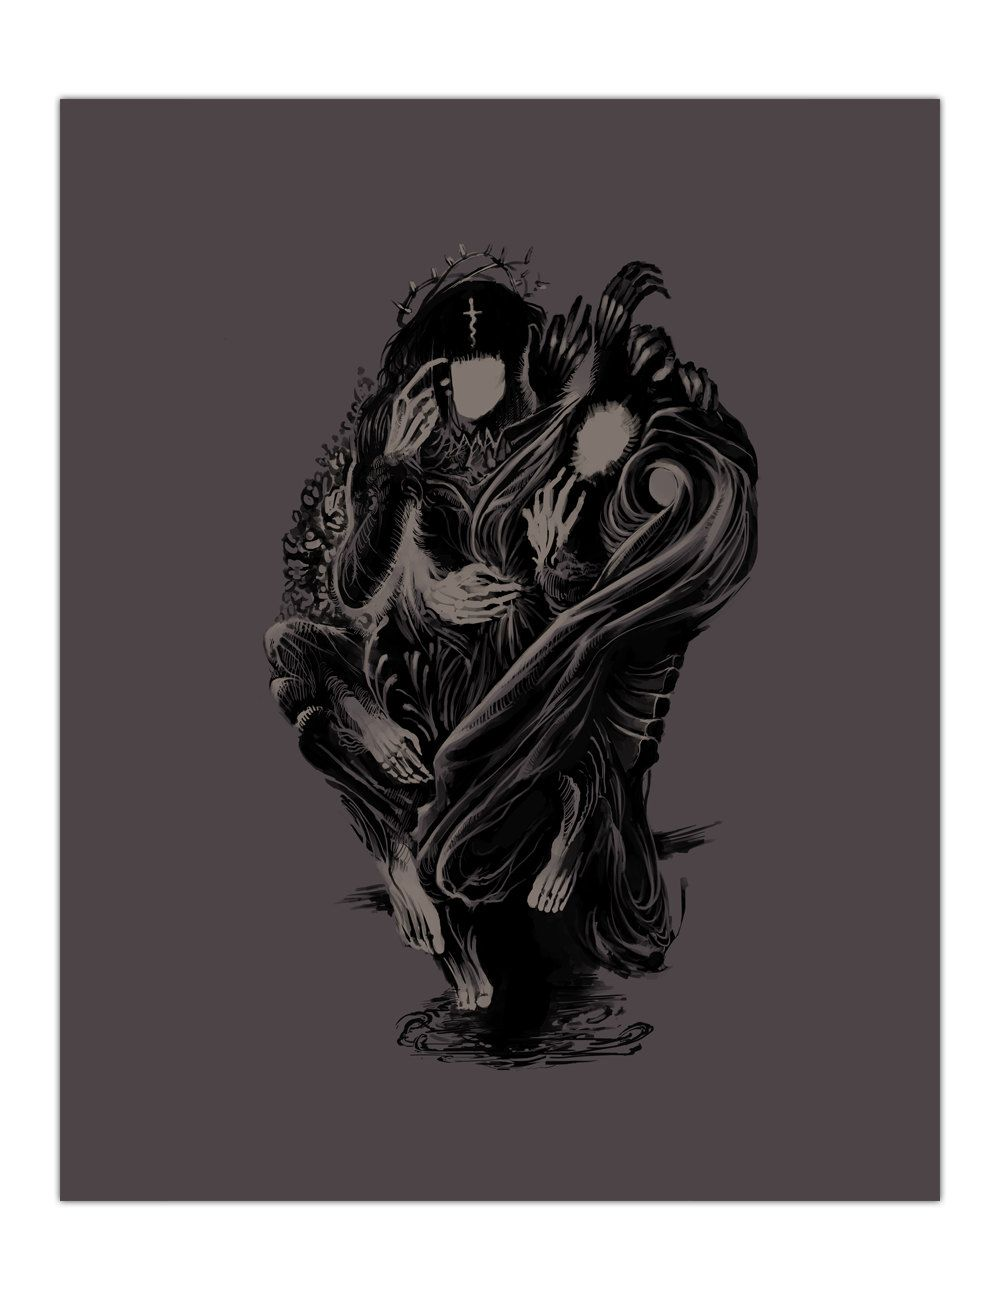 Companion surreal art print in coffee color at 8x10 by deadsolace